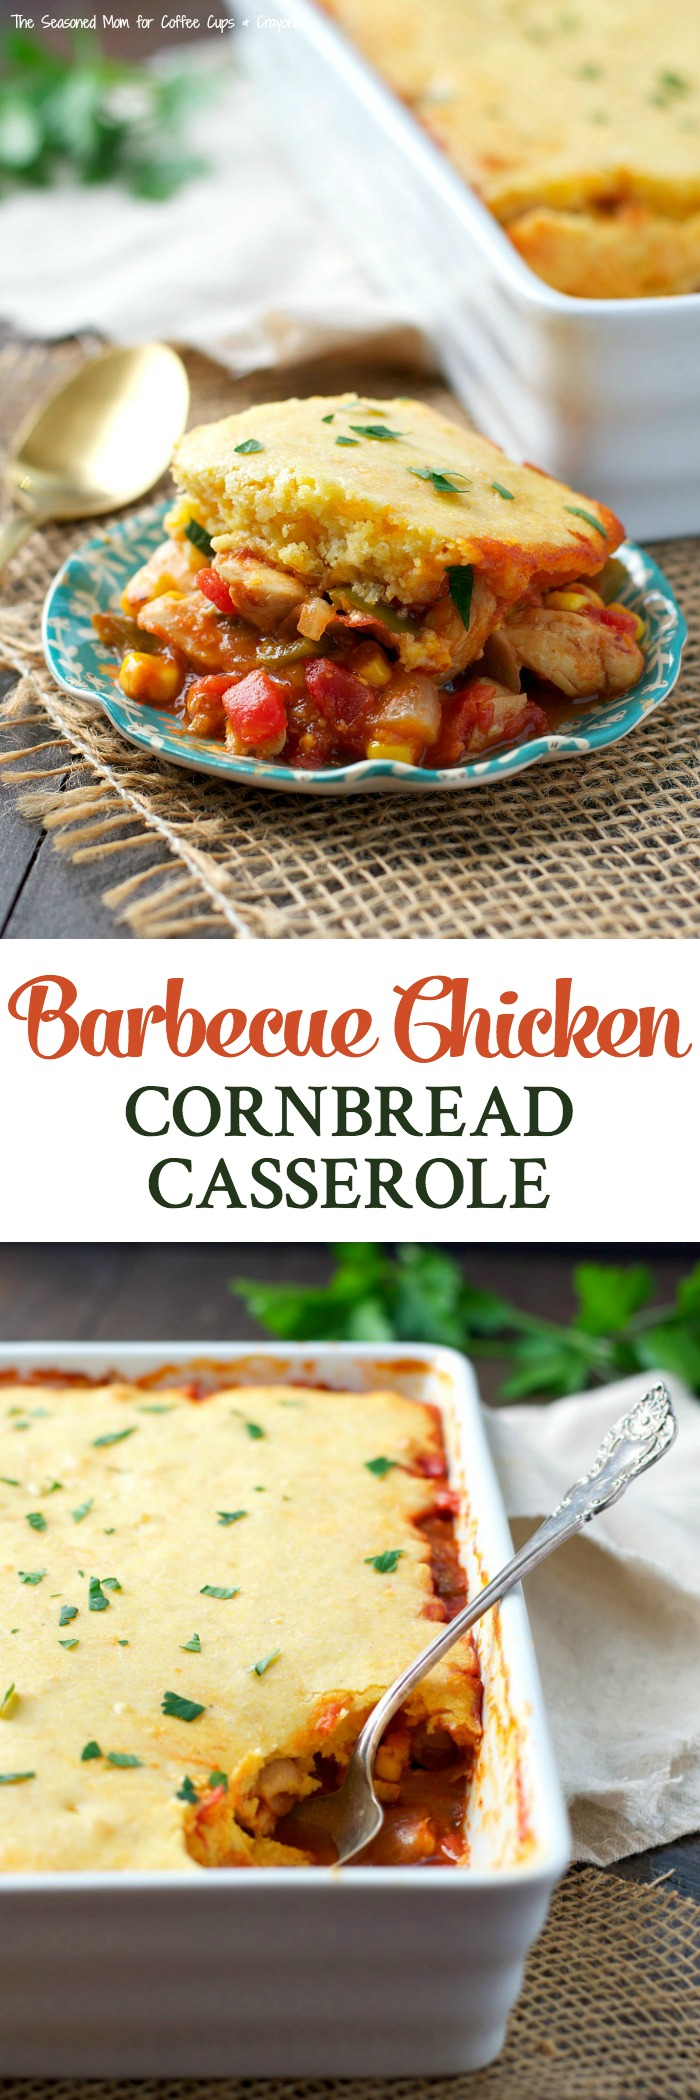 This Barbecue Chicken Cornbread Casserole is an easy dinner that comes together in just 15 minutes!